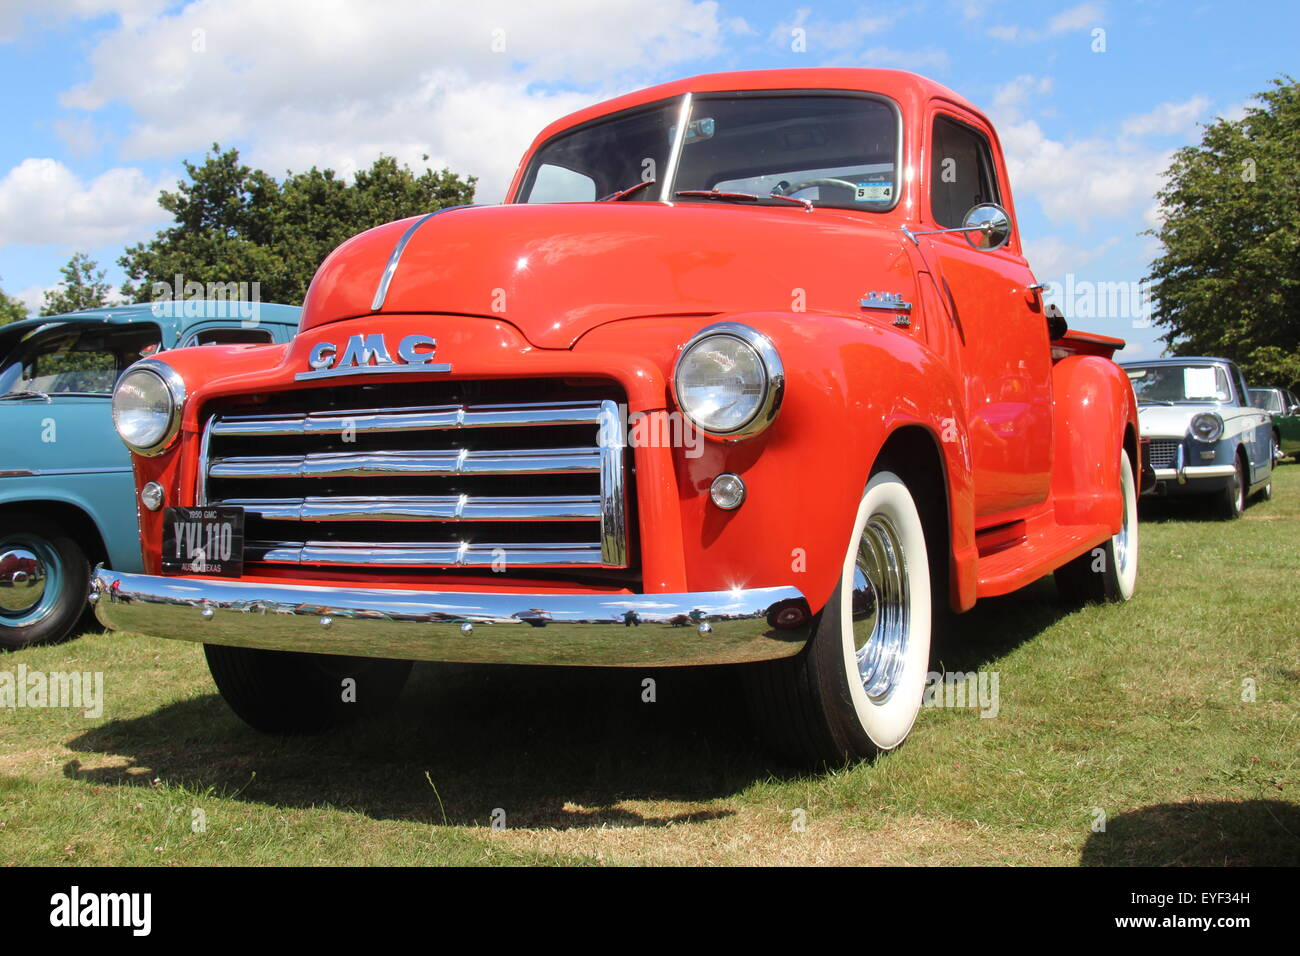 Vintage Gmc Truck Stock Photos Images Alamy 1954 Pickup 1950 Orange Pick Up At A Vehicle Rally Image